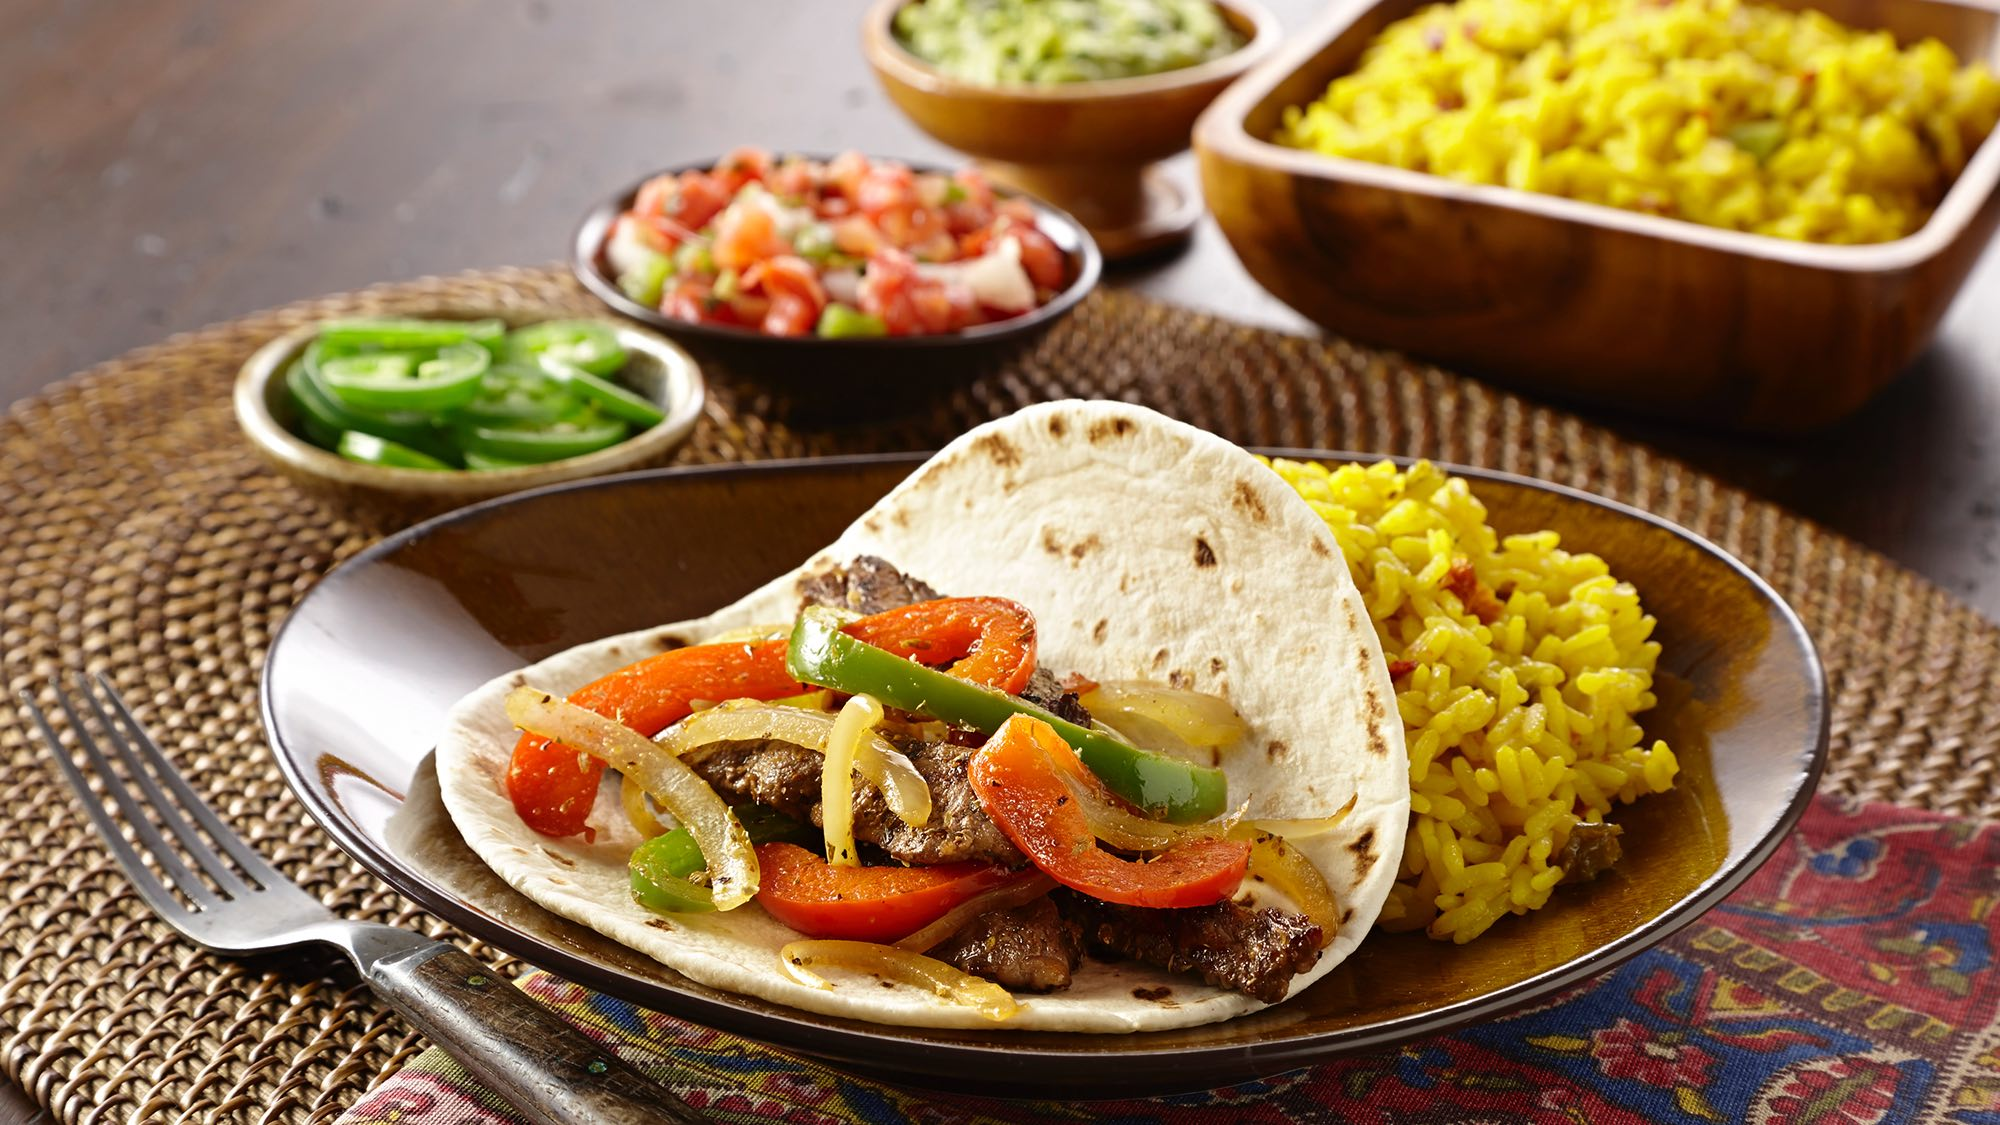 McCormick Steak Fajitas